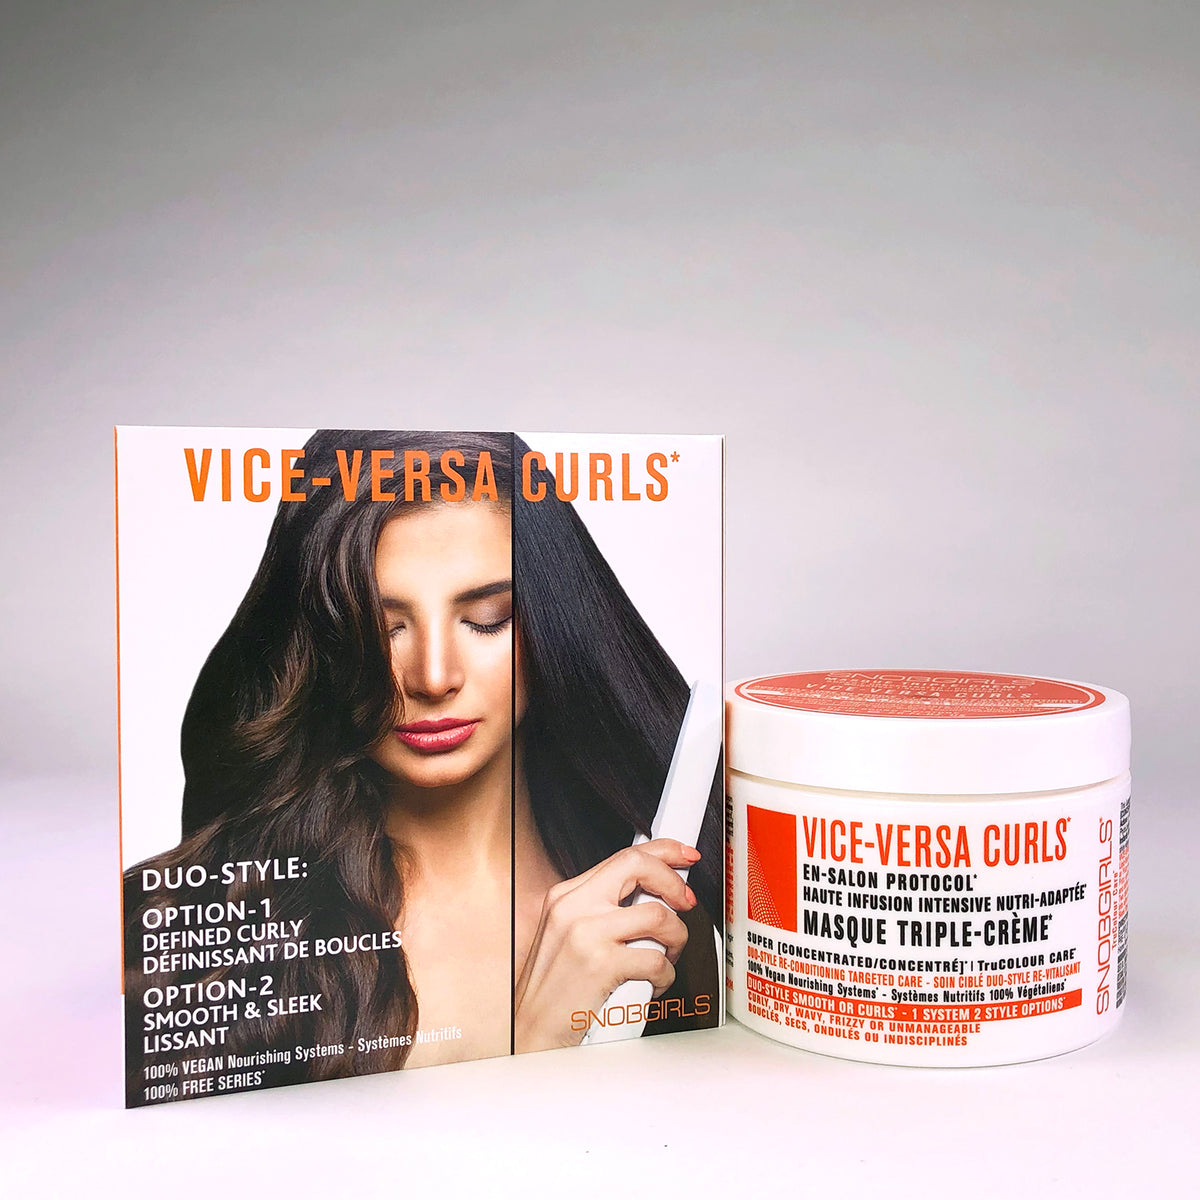 VICE-VERSA CURLS Duo-Style: Smoothing or Curl Defining Triple-Creme Masque - SNOBGIRLS.com